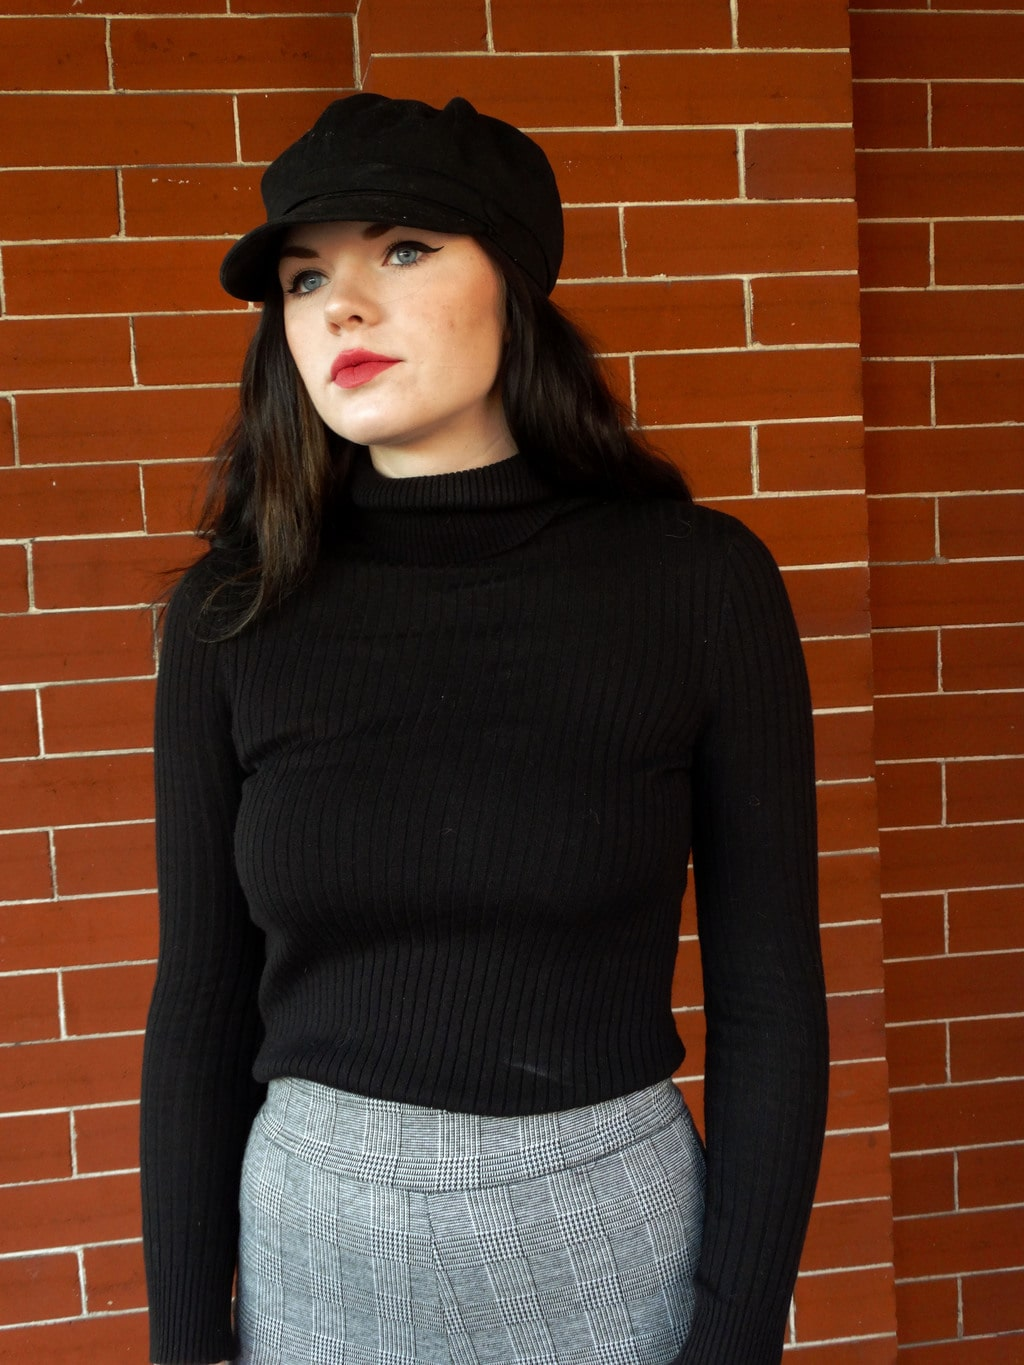 Mackenzie styles a tight black turtleneck sweater with high-waisted checkered pants and a black cabby hat.